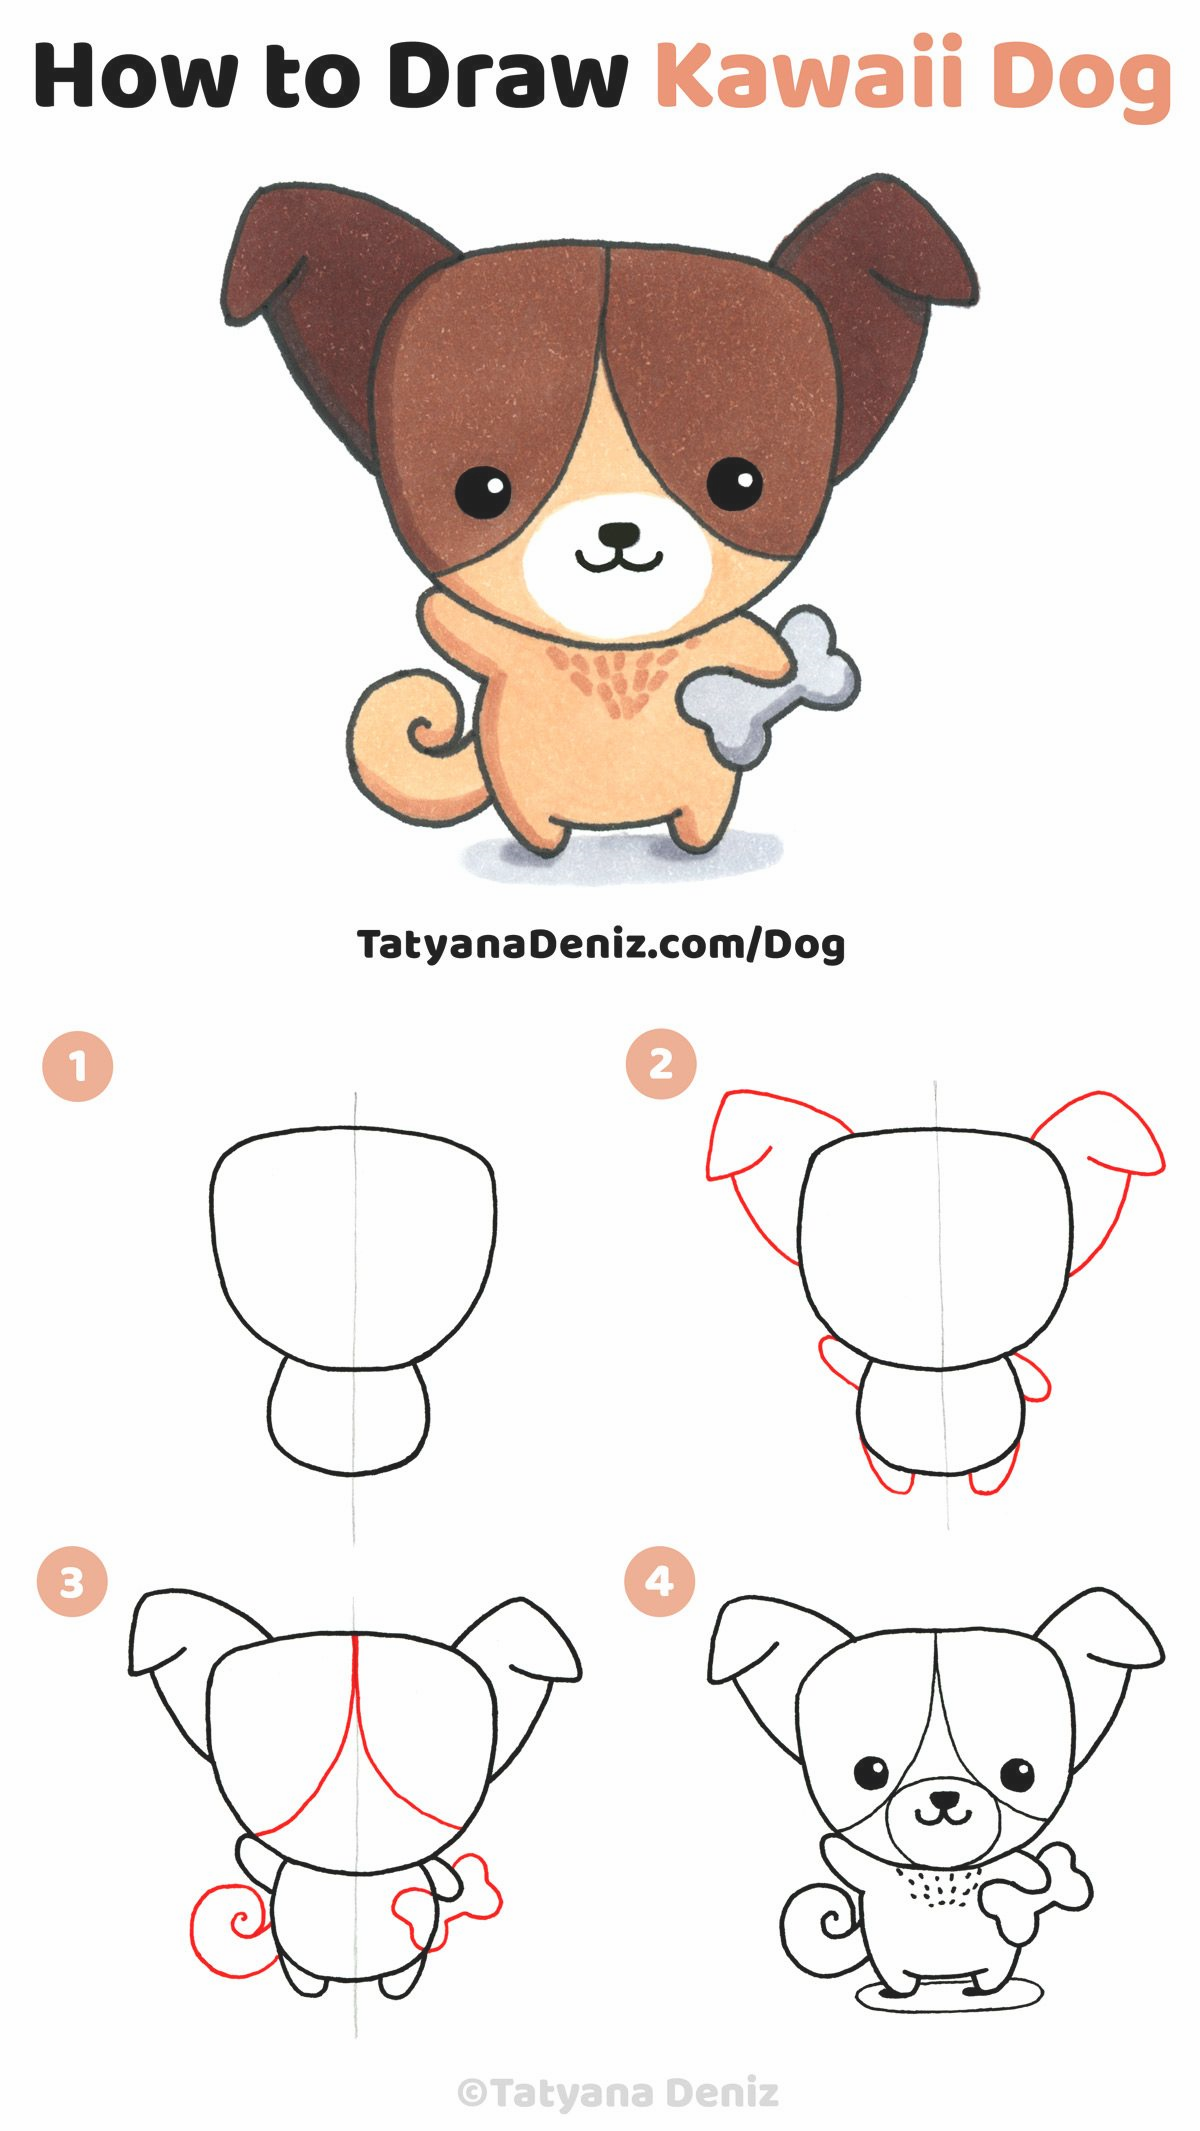 How To Attract Kawaii Canine Step By Step Tutorial Of Drawing In 2020 Dog Drawing Simple Dog Drawing Tutorial Cute Kawaii Drawings